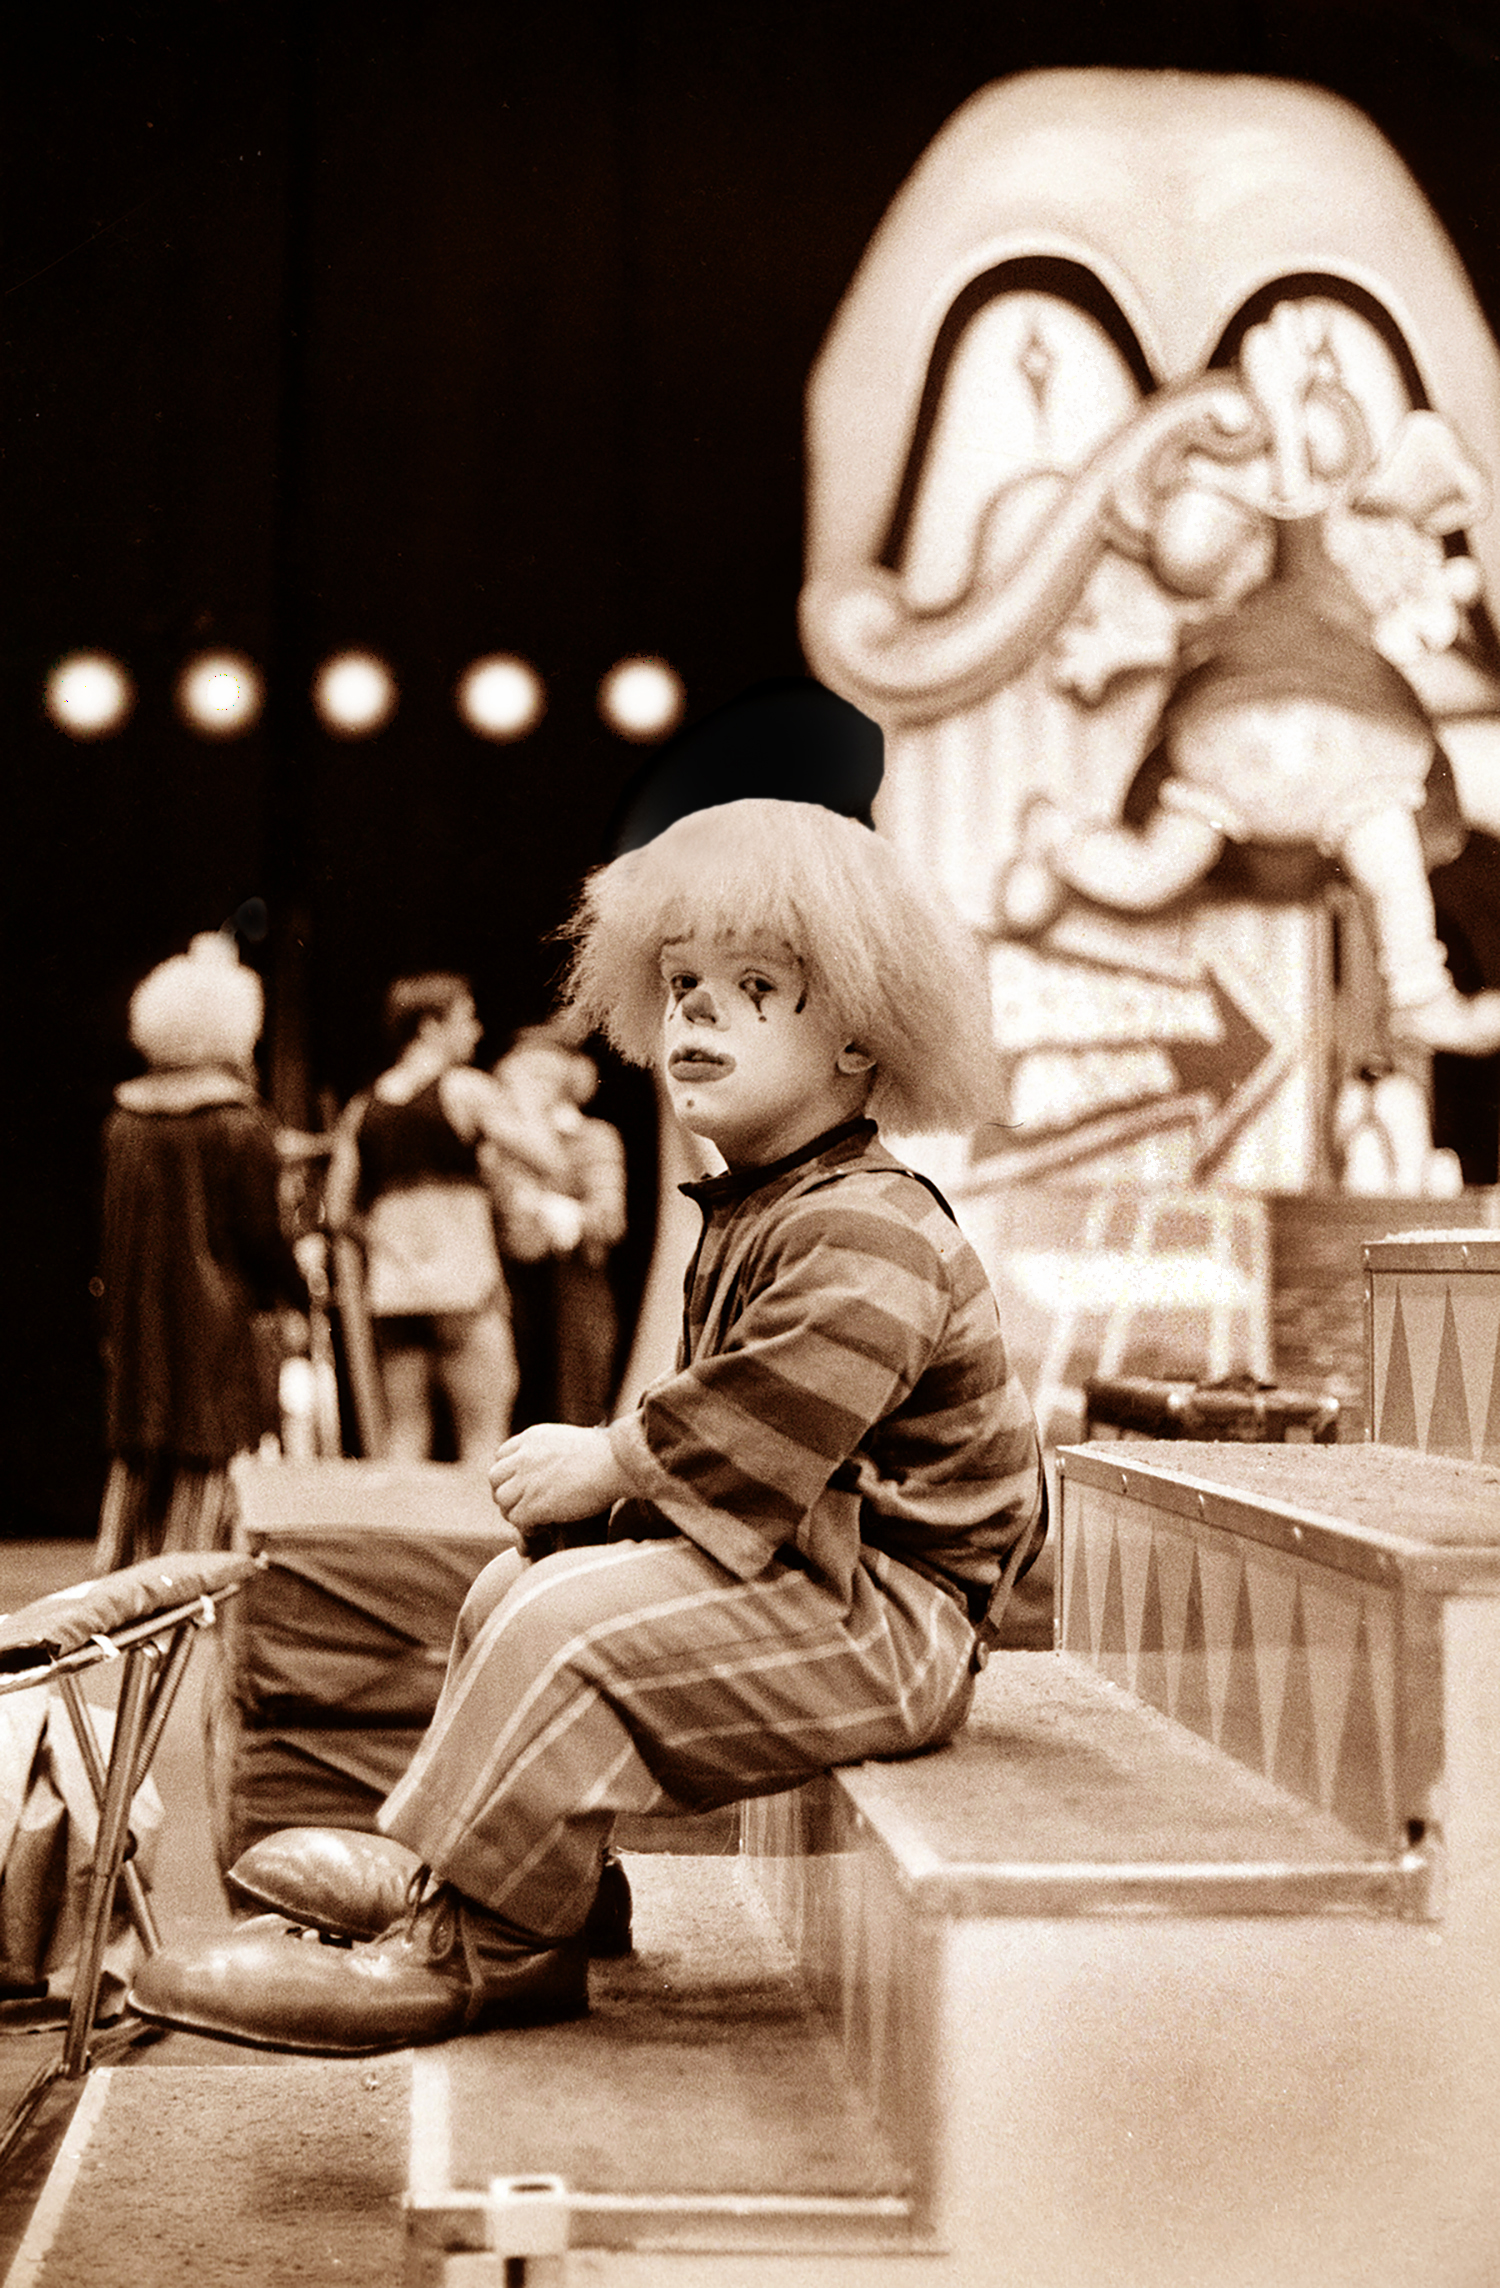 LITTLE PERSON CLOWN, RINGLING